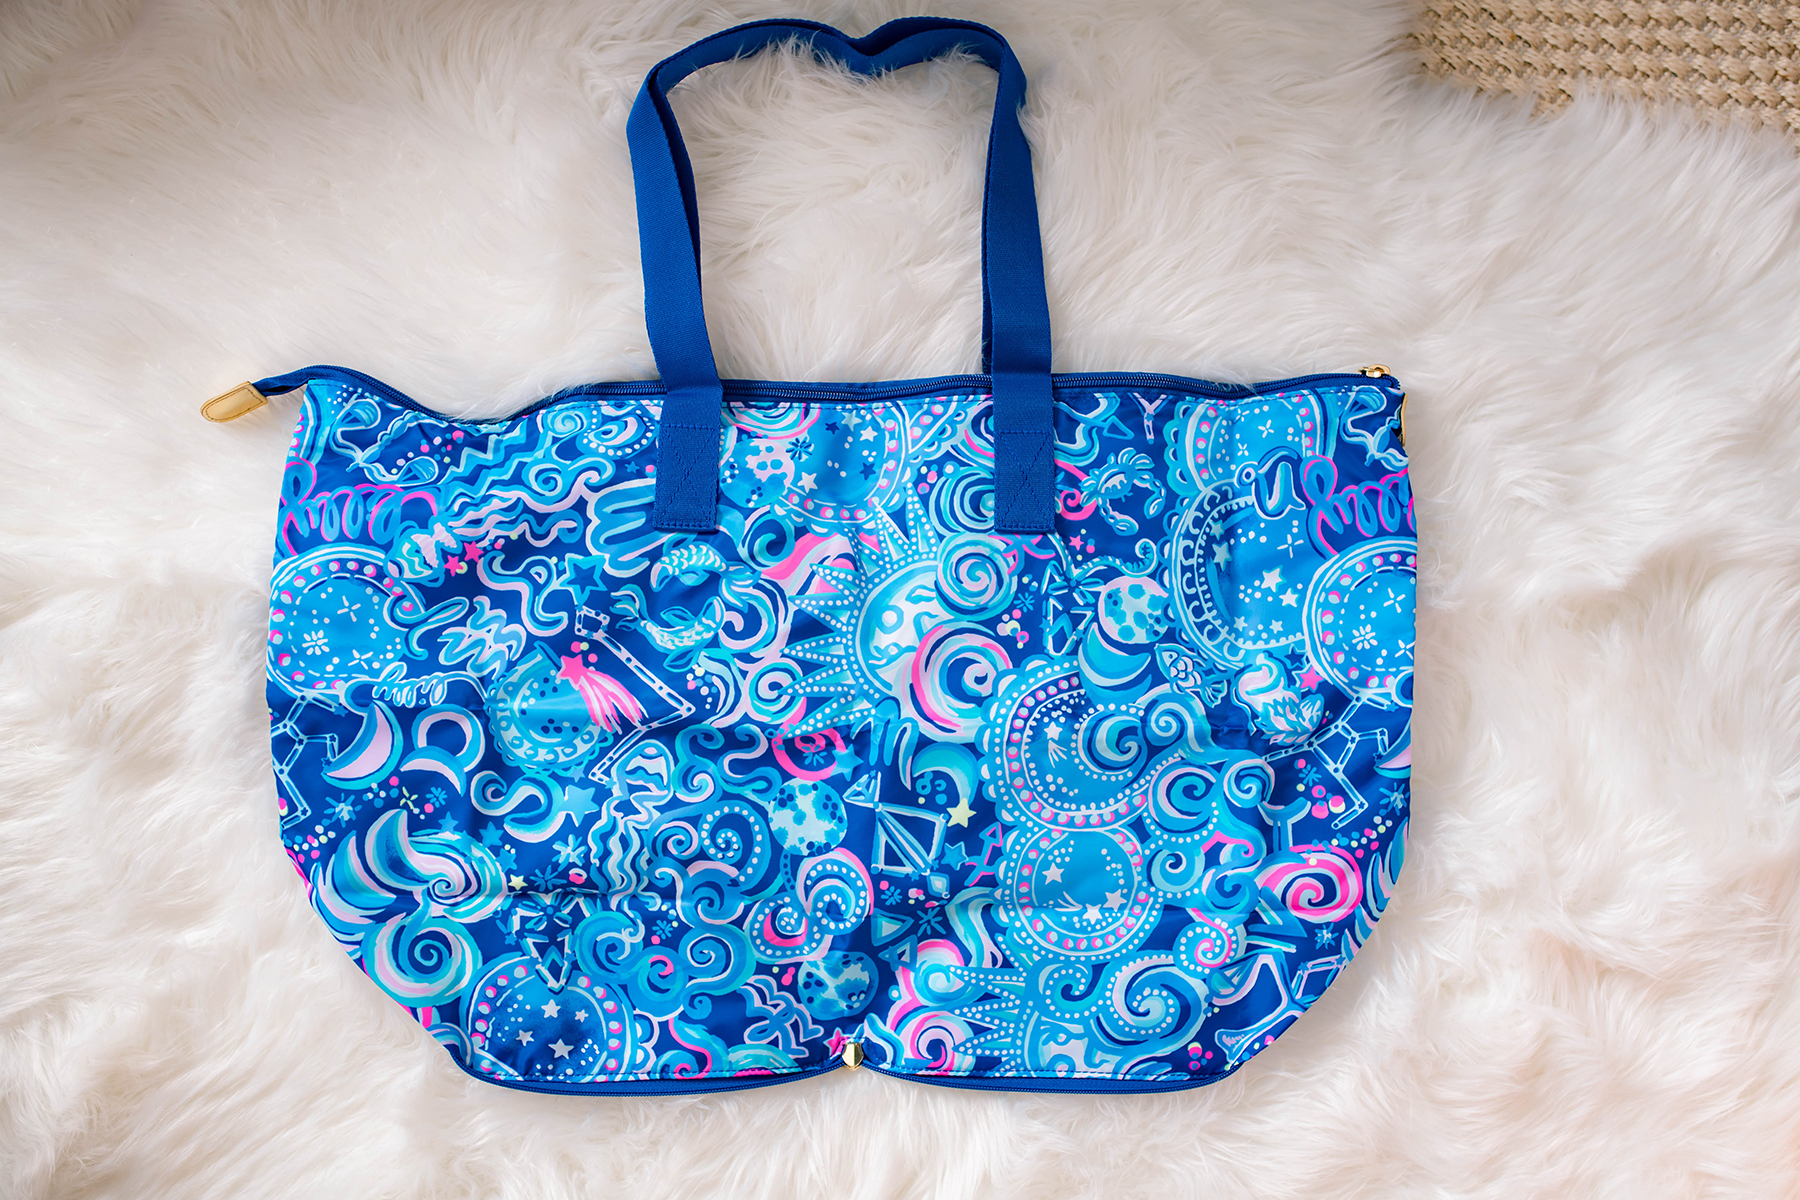 Lilly Pulitzer Packable Travel Tote